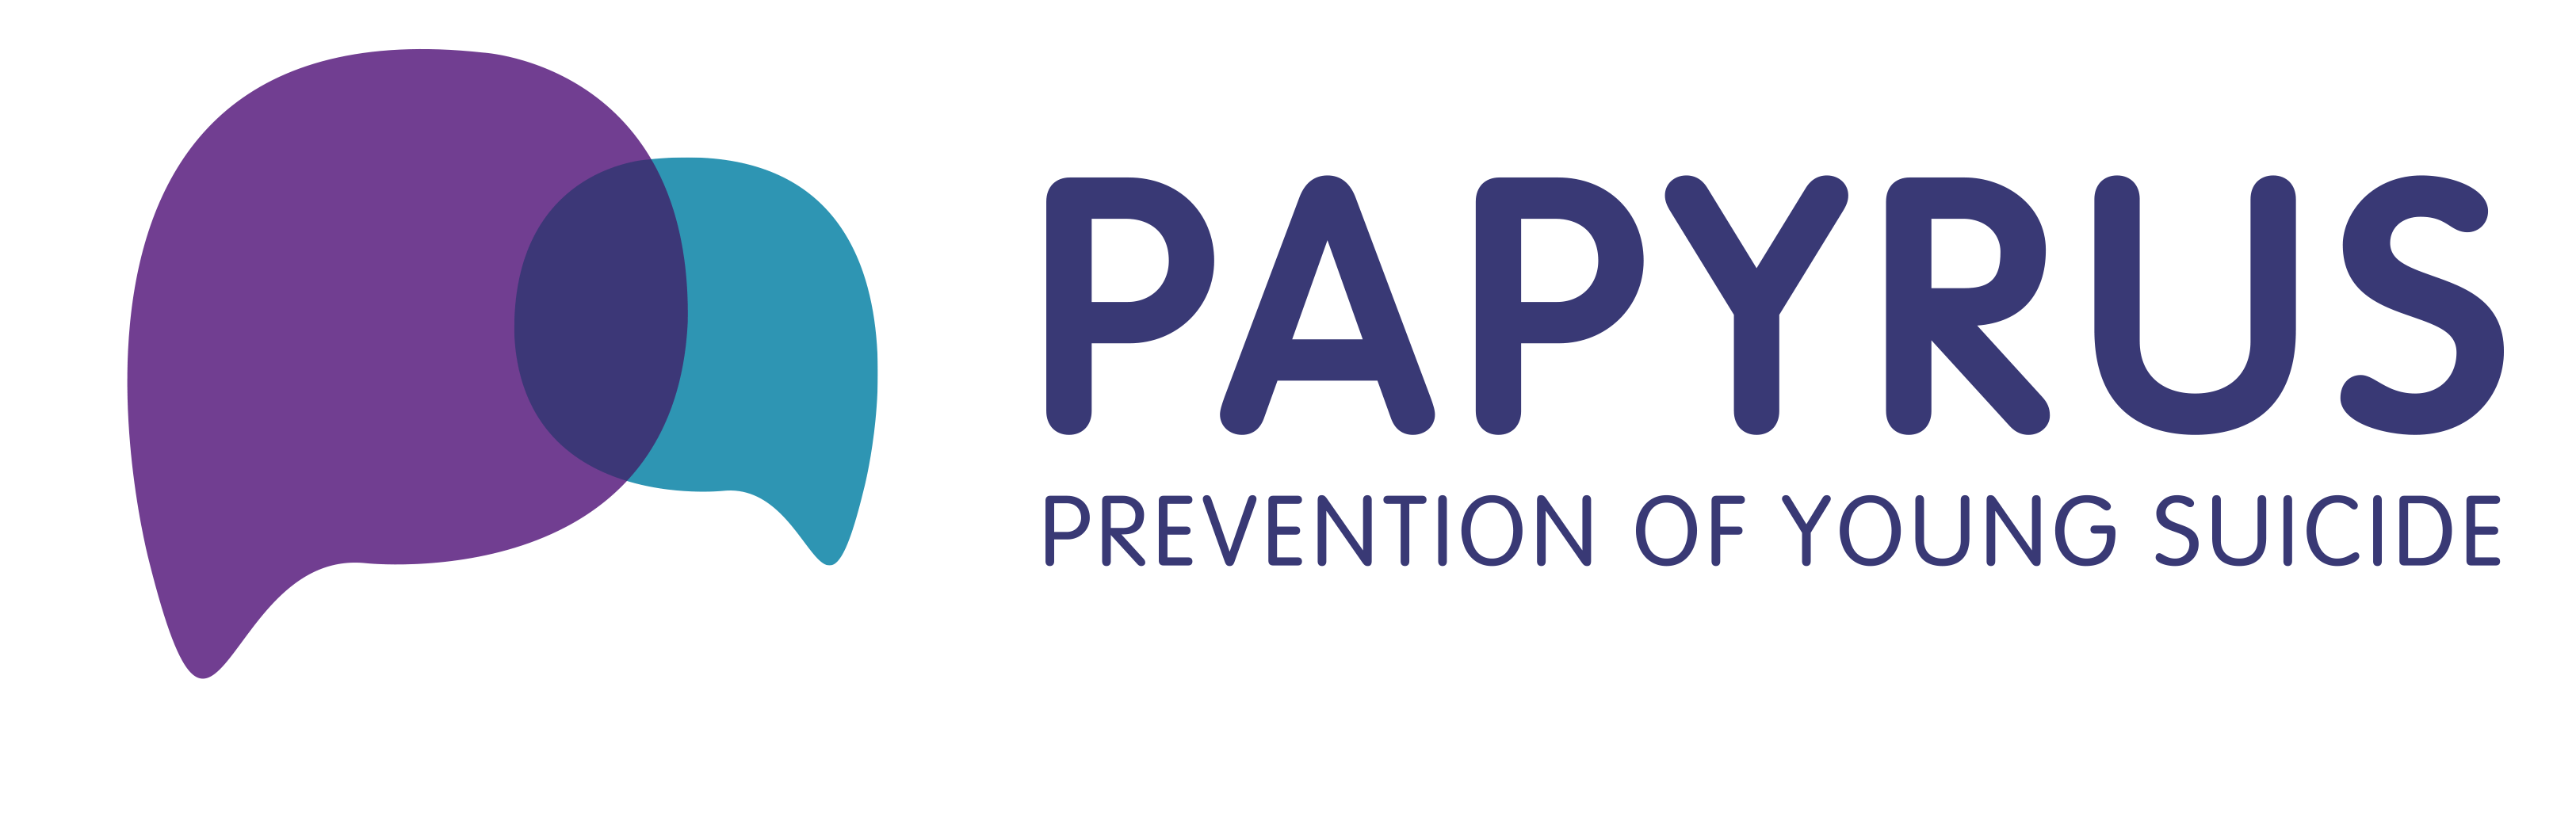 HOPELINEUK | Papyrus UK | Suicide Prevention Charity